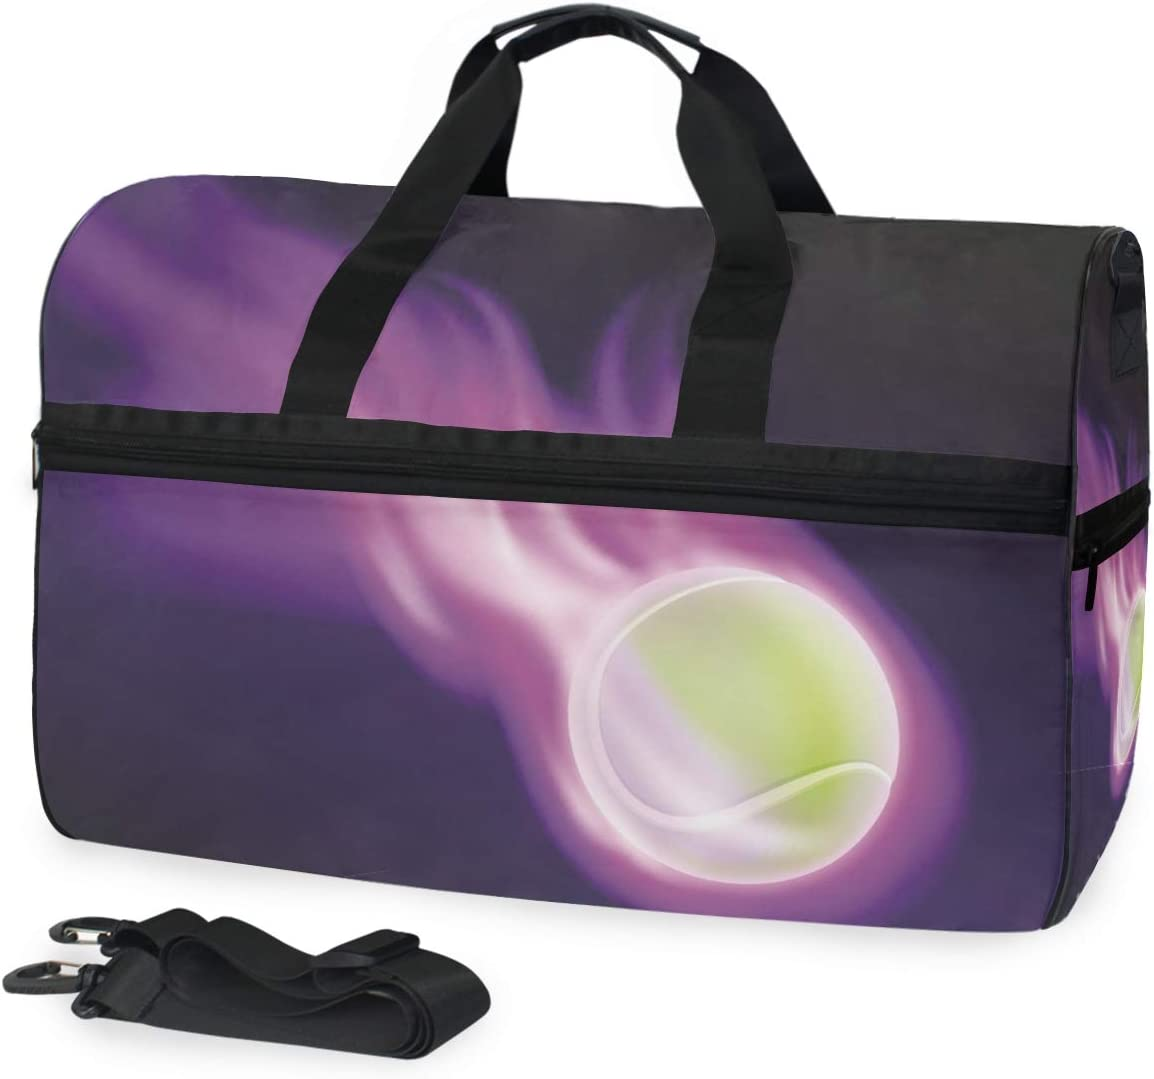 AHOMY Tenni Ball On Purple Fire Sports Gym Bag with Shoes Compartment Travel Duffel Bag